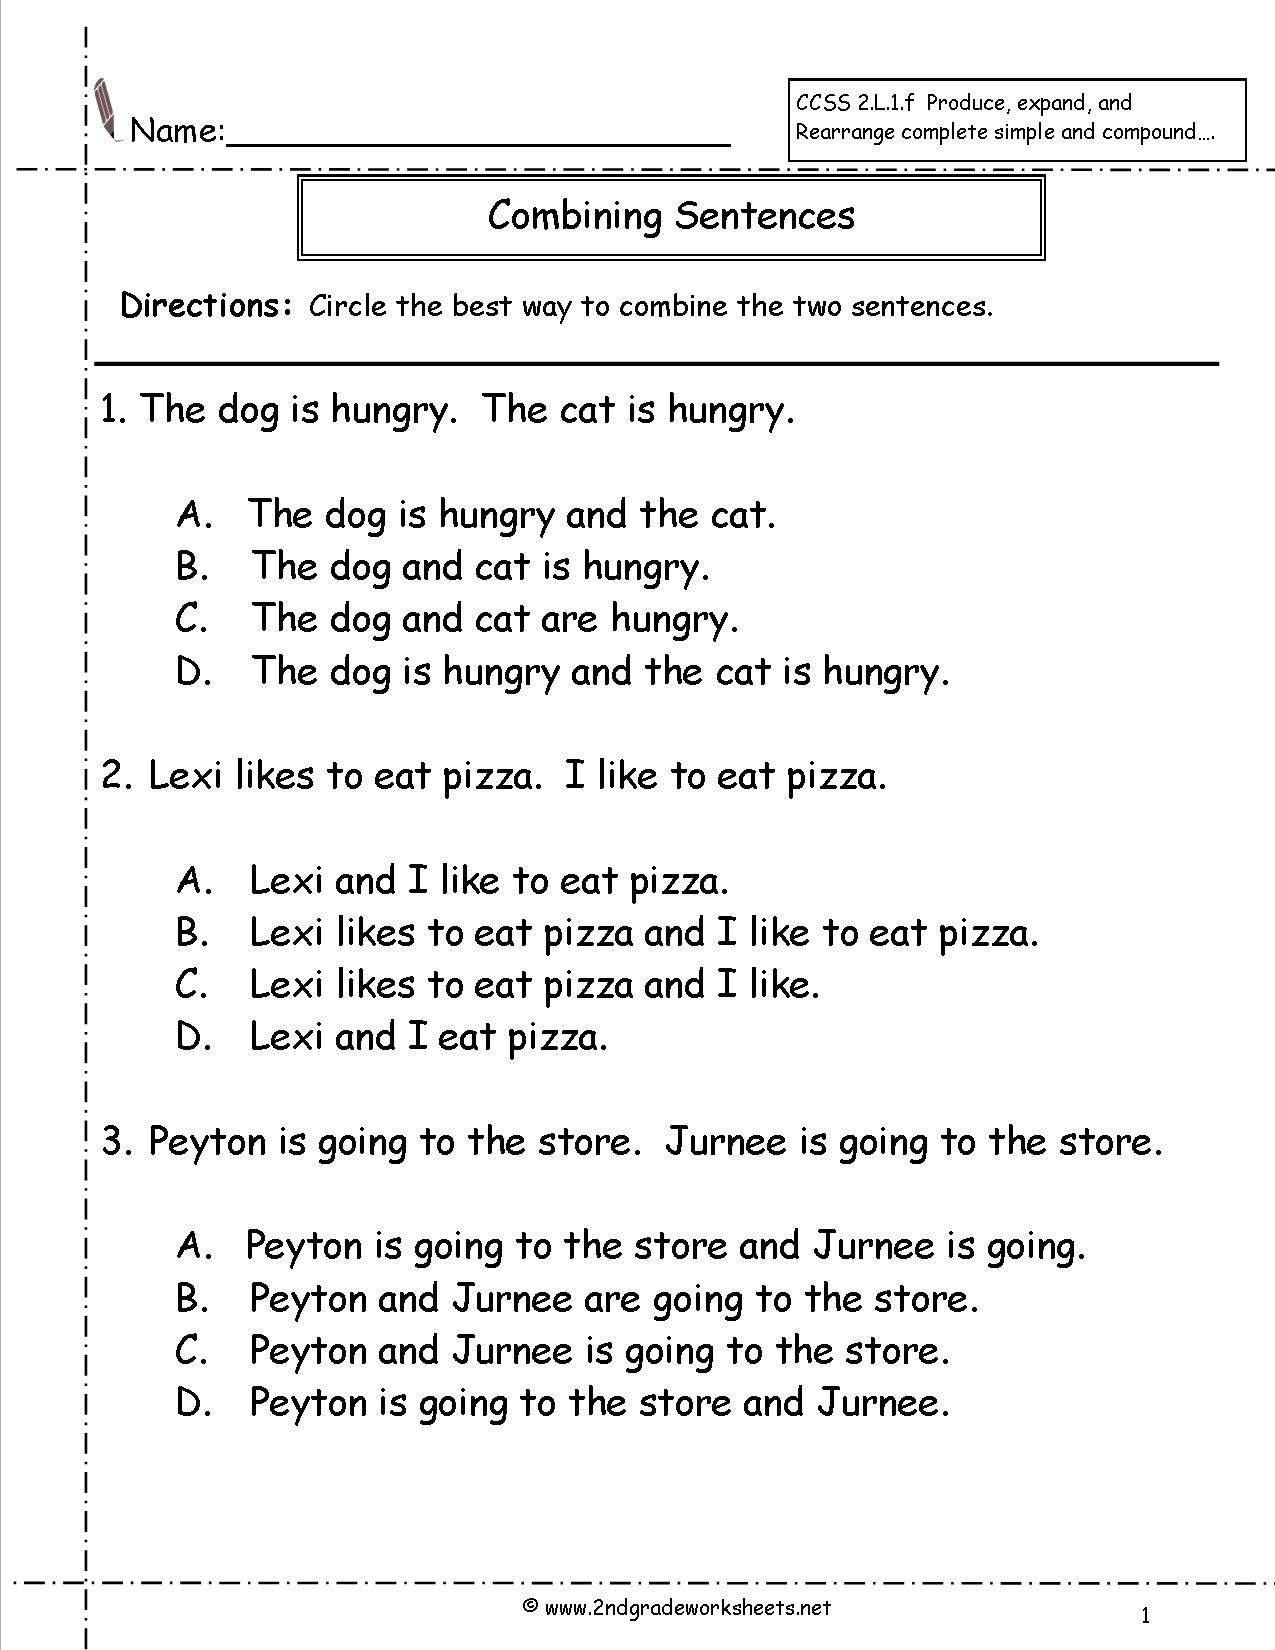 Worksheets Sentence Combining Worksheets combining sentences worksheet sentence helps pinterest worksheet